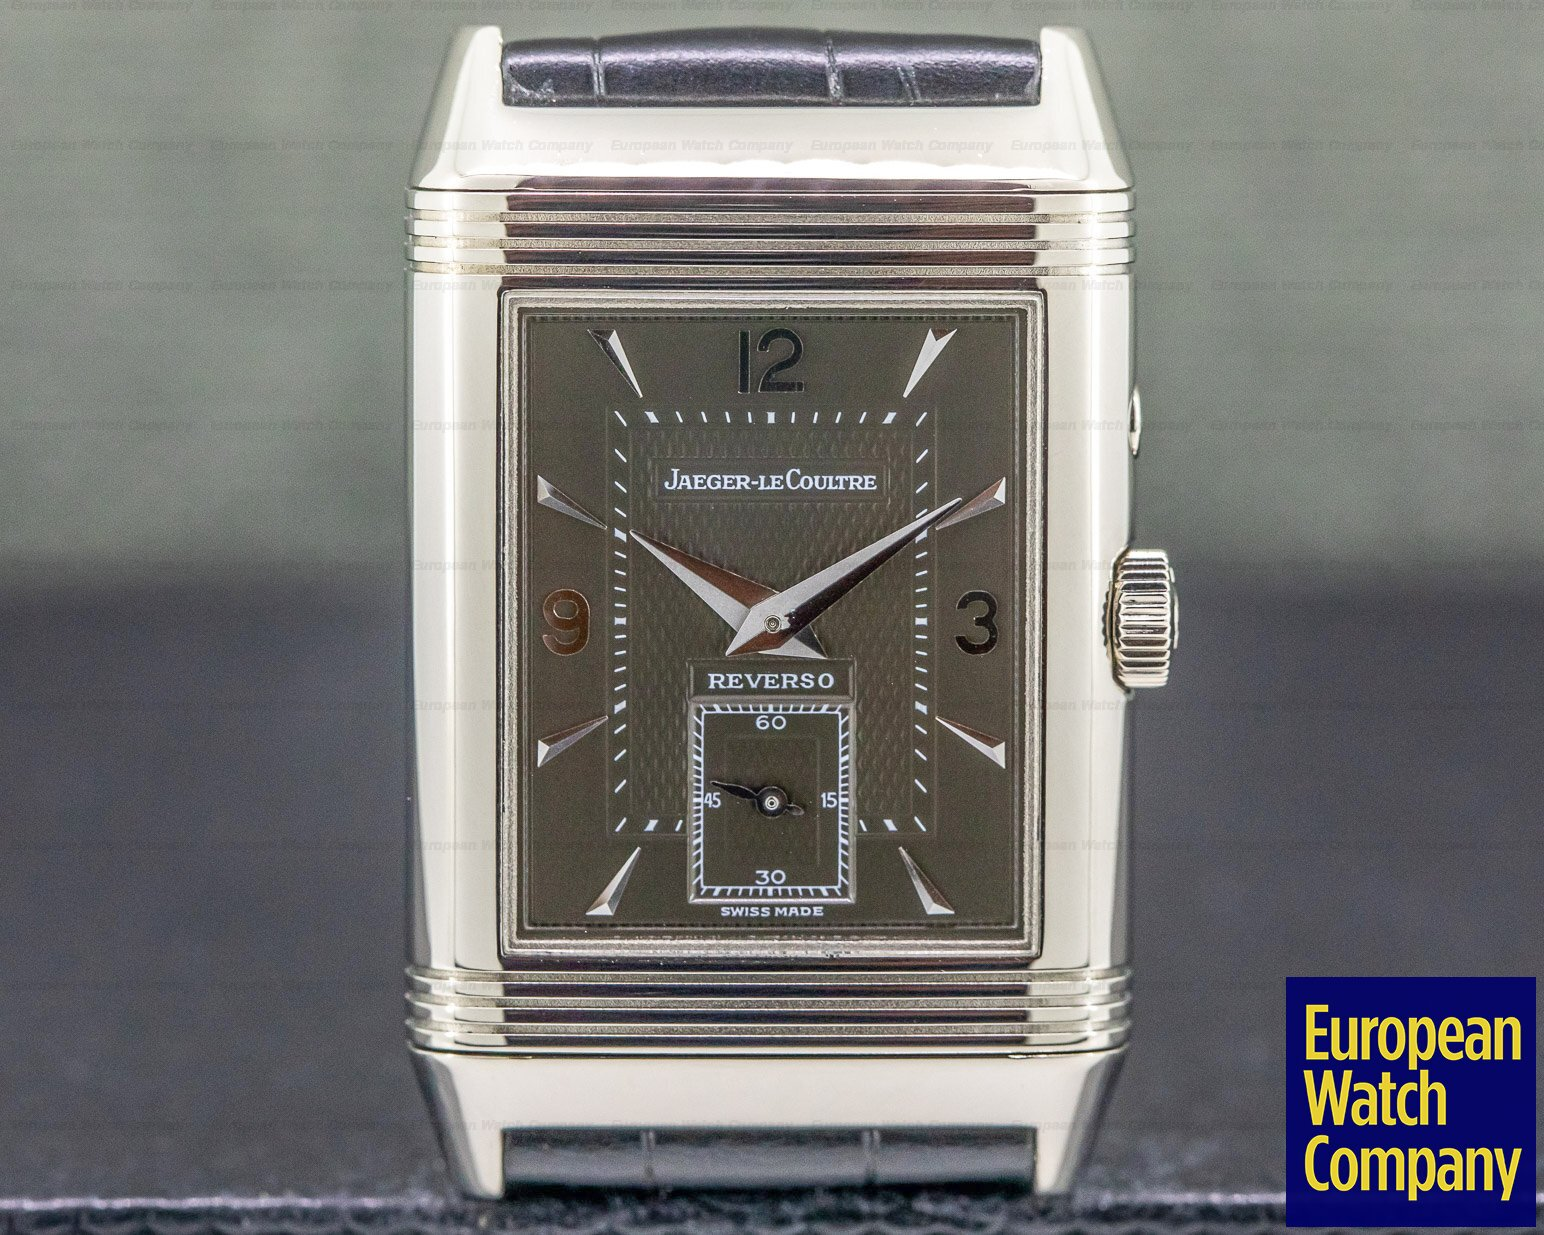 Jaeger LeCoultre 270354 Reverso Duo White Gold / Black & Salmon Dial FULL SET